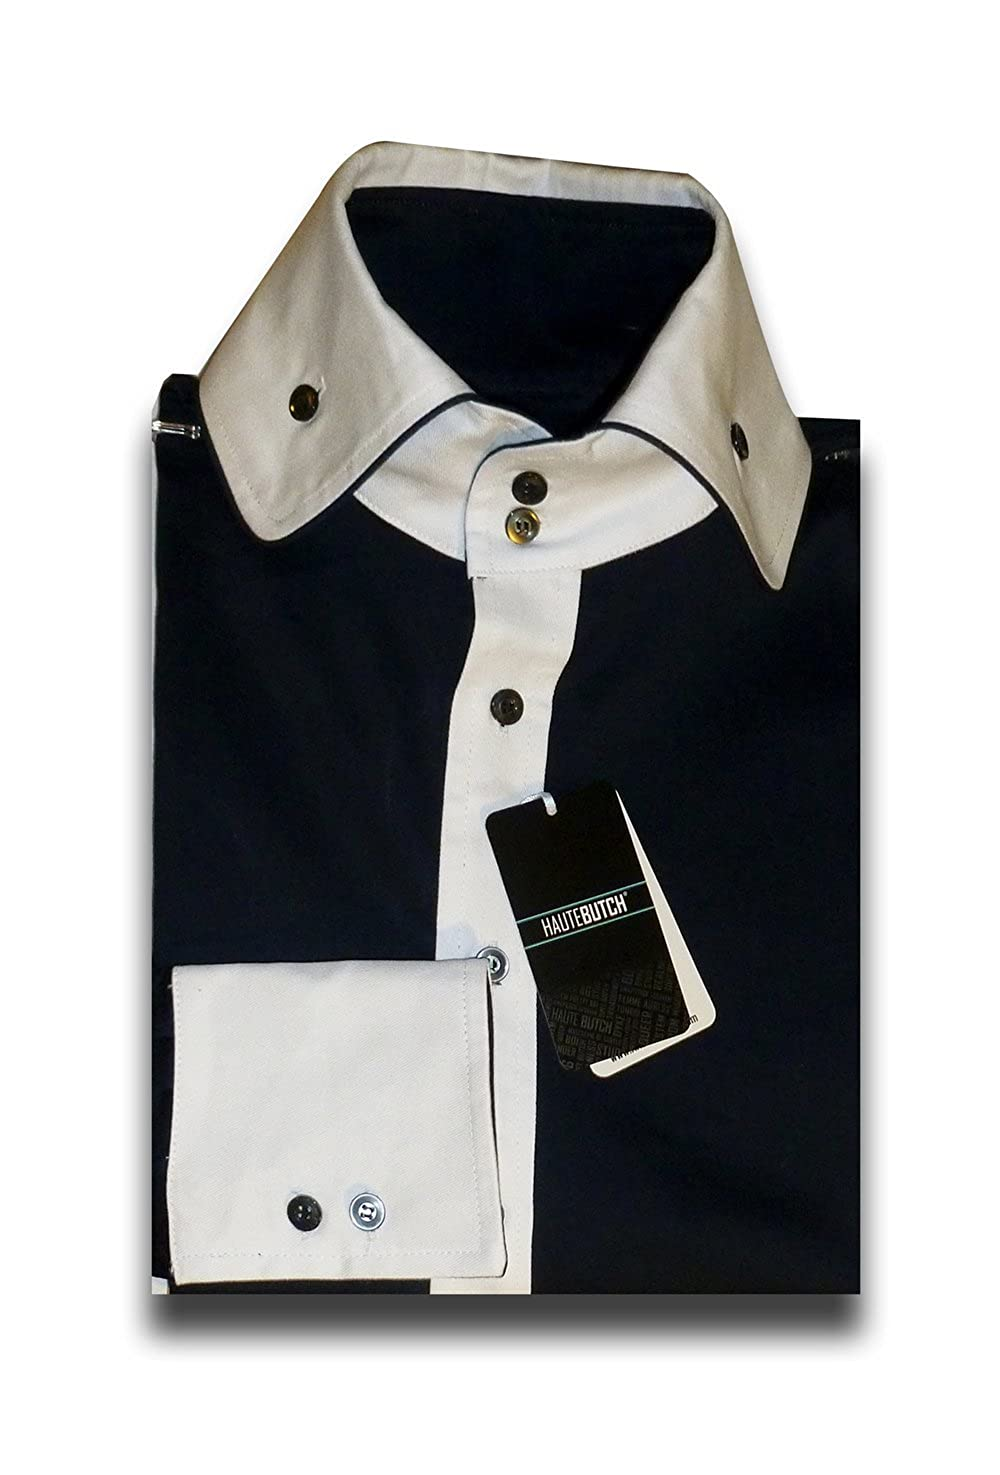 Hautebutch Womens Button-Up with White Accented Collar and Cuffs